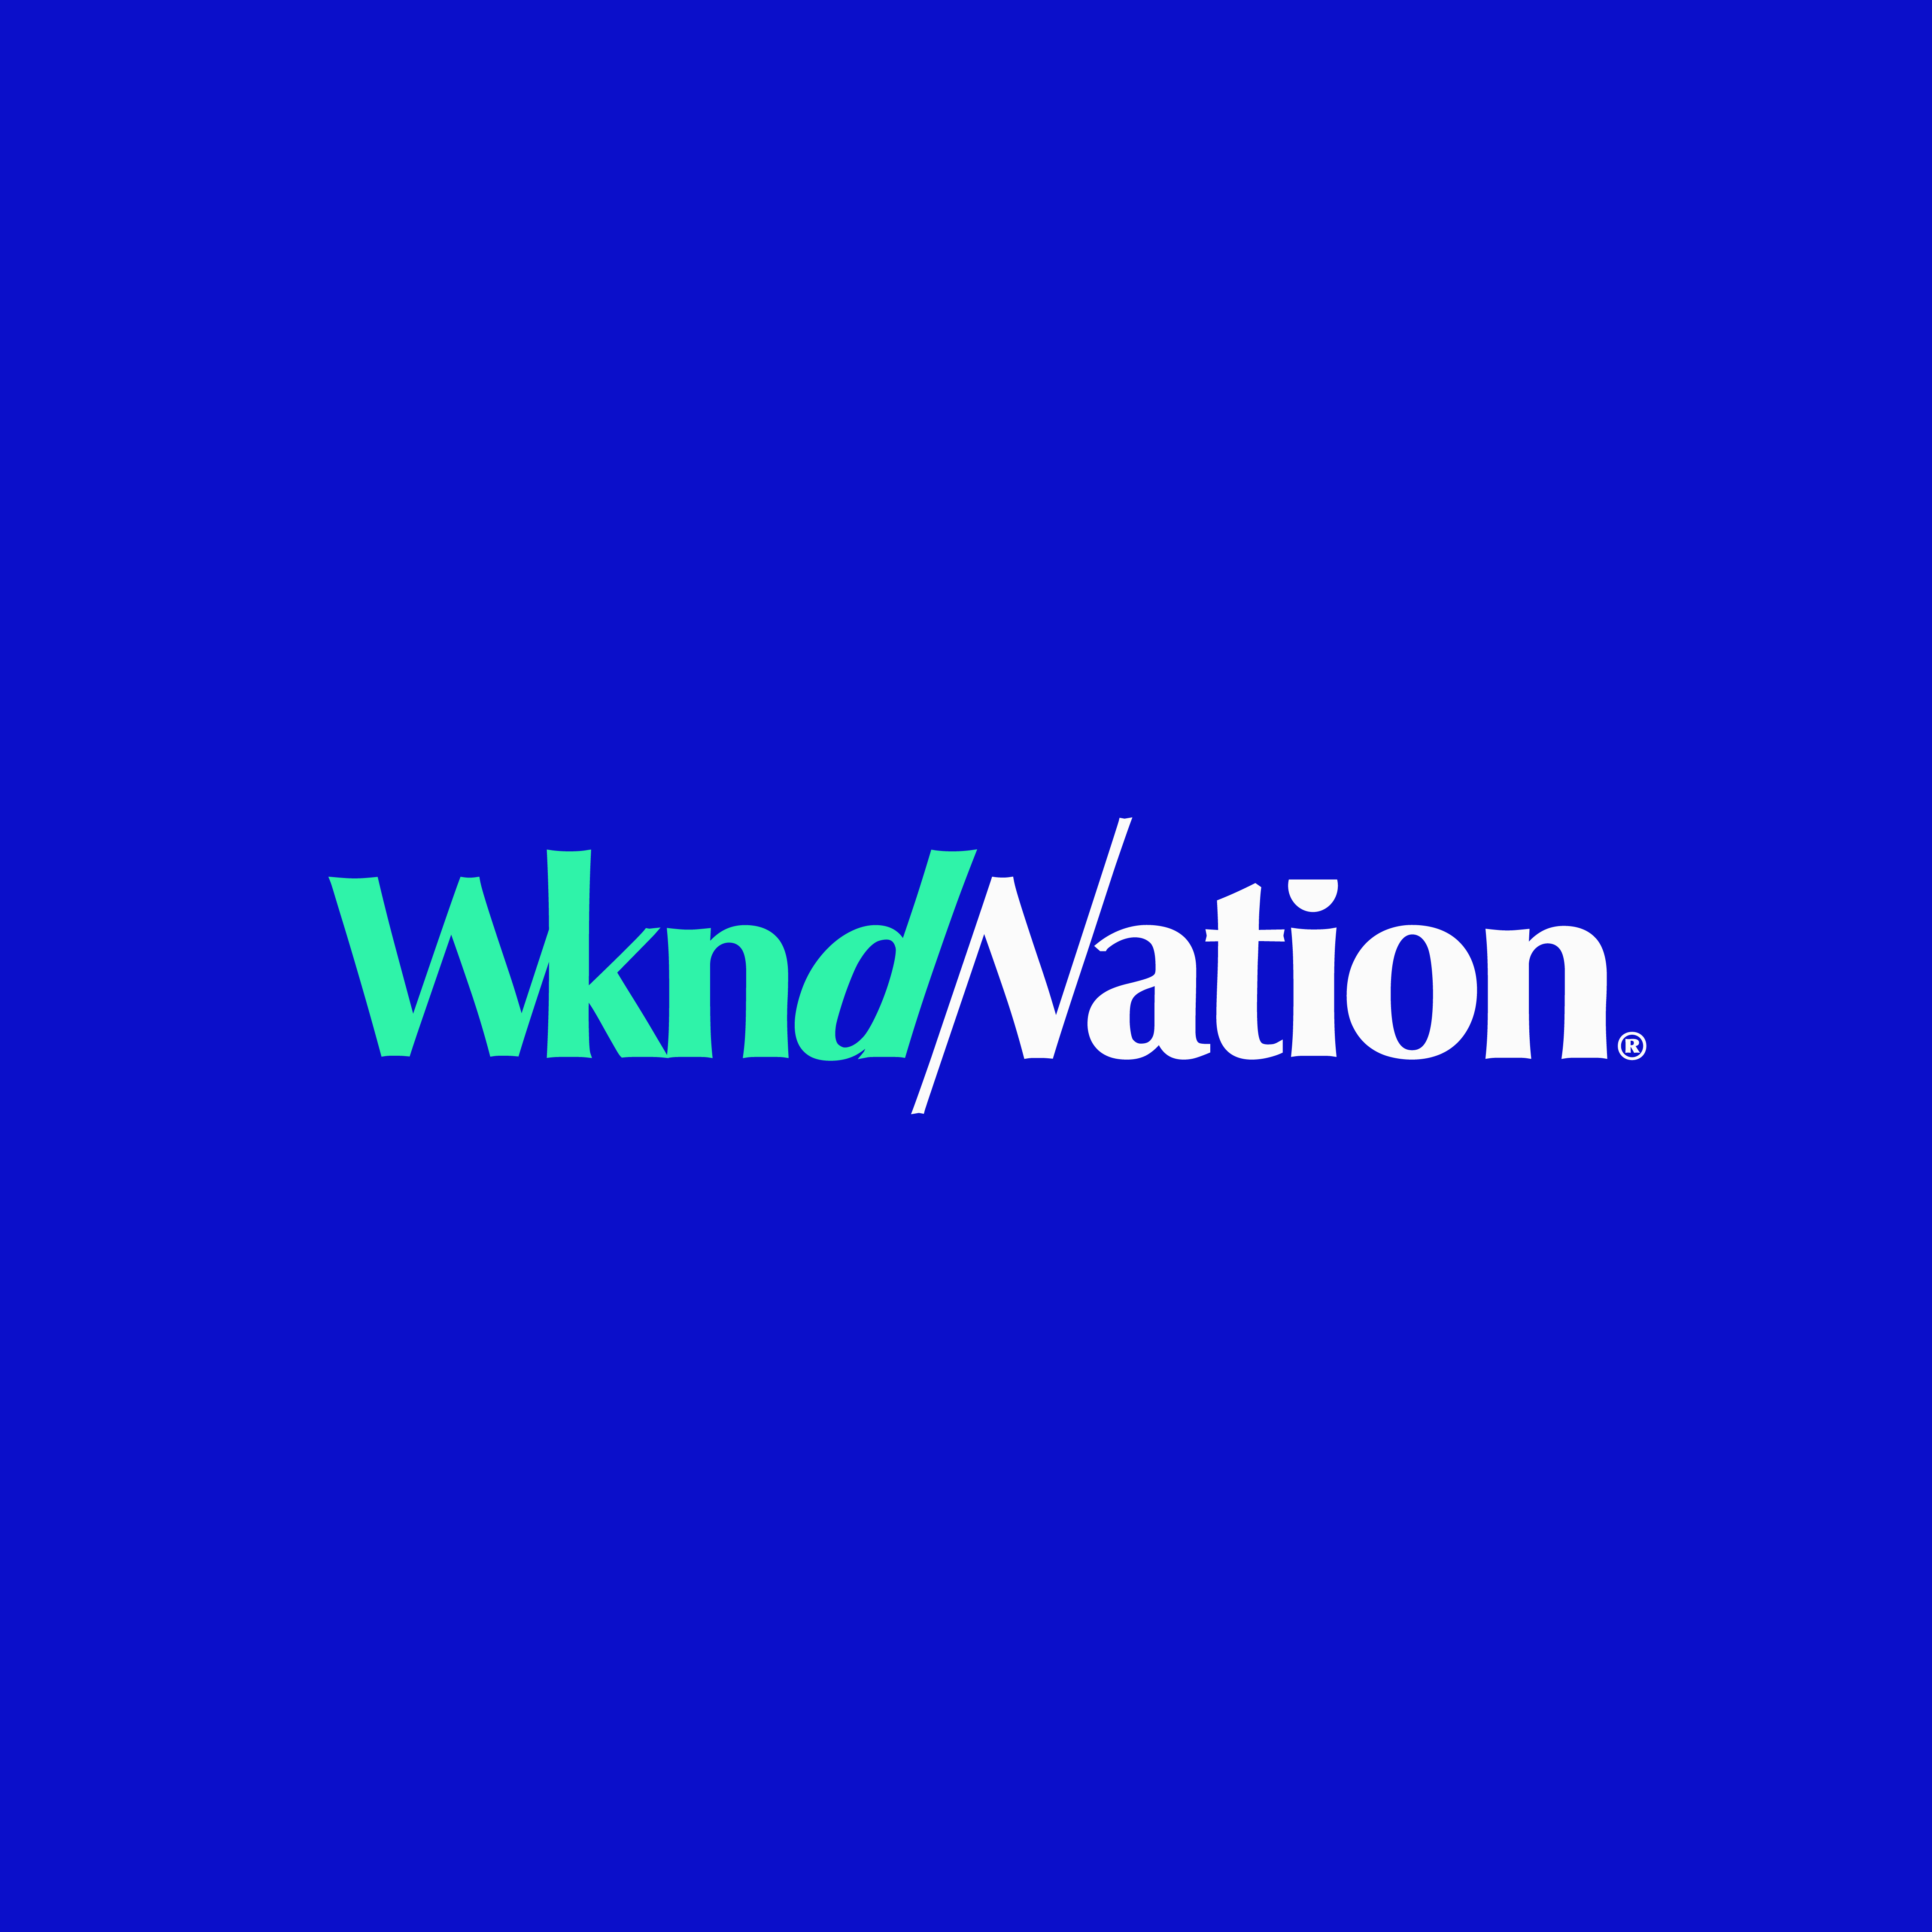 Rook/NYC Creates Brand Experience for New Loungewear co, Wknd Nation